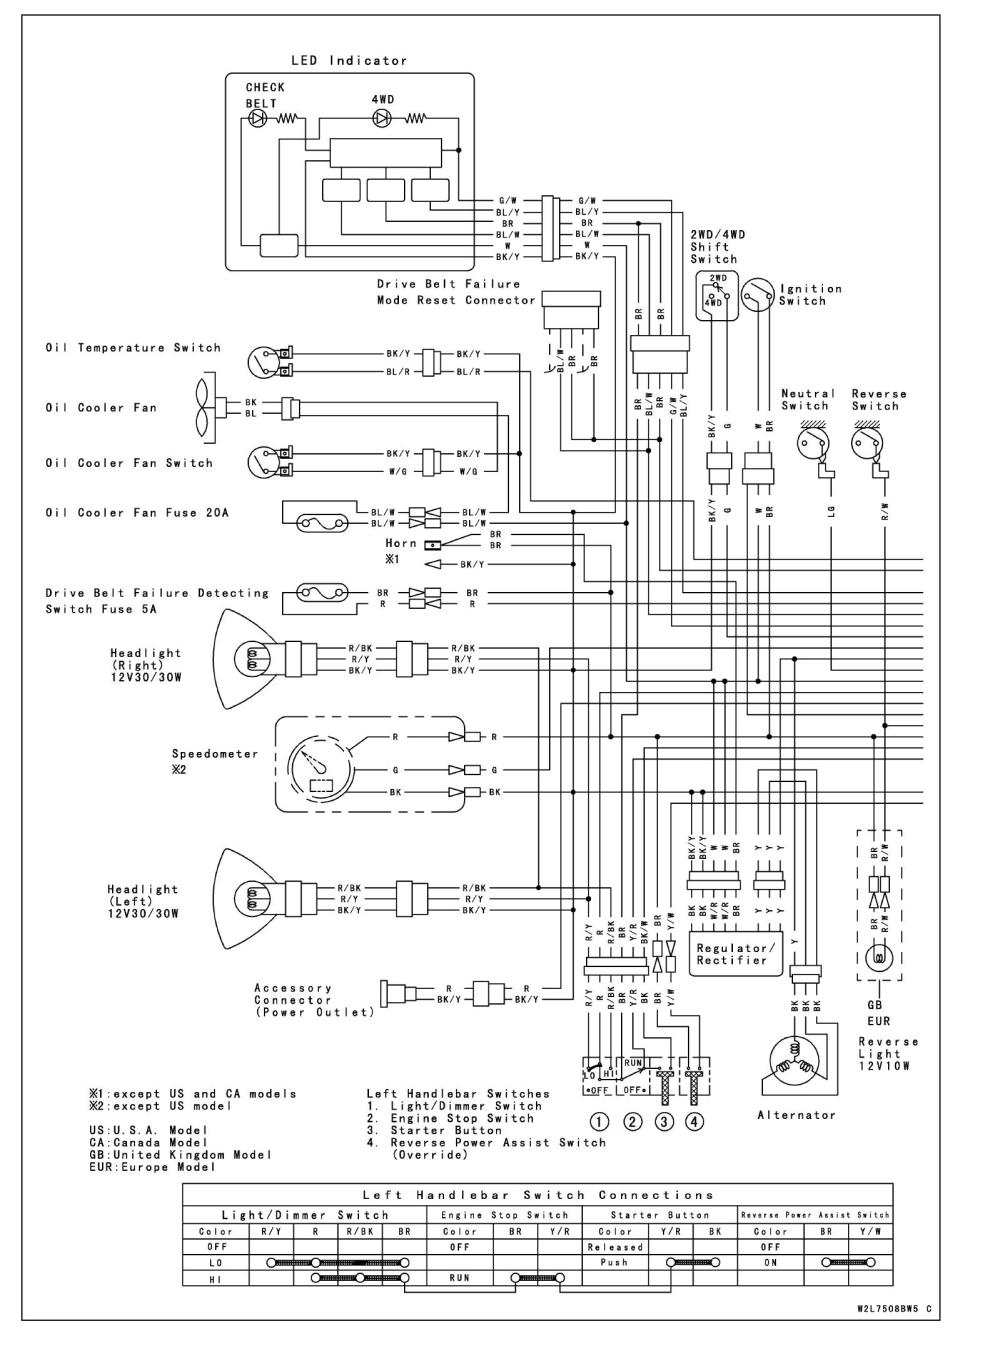 medium resolution of kawasaki lakota 300 wiring diagram wiring diagram schematicskawasaki atv 400 4x4 wiring diagram wiring diagram featured